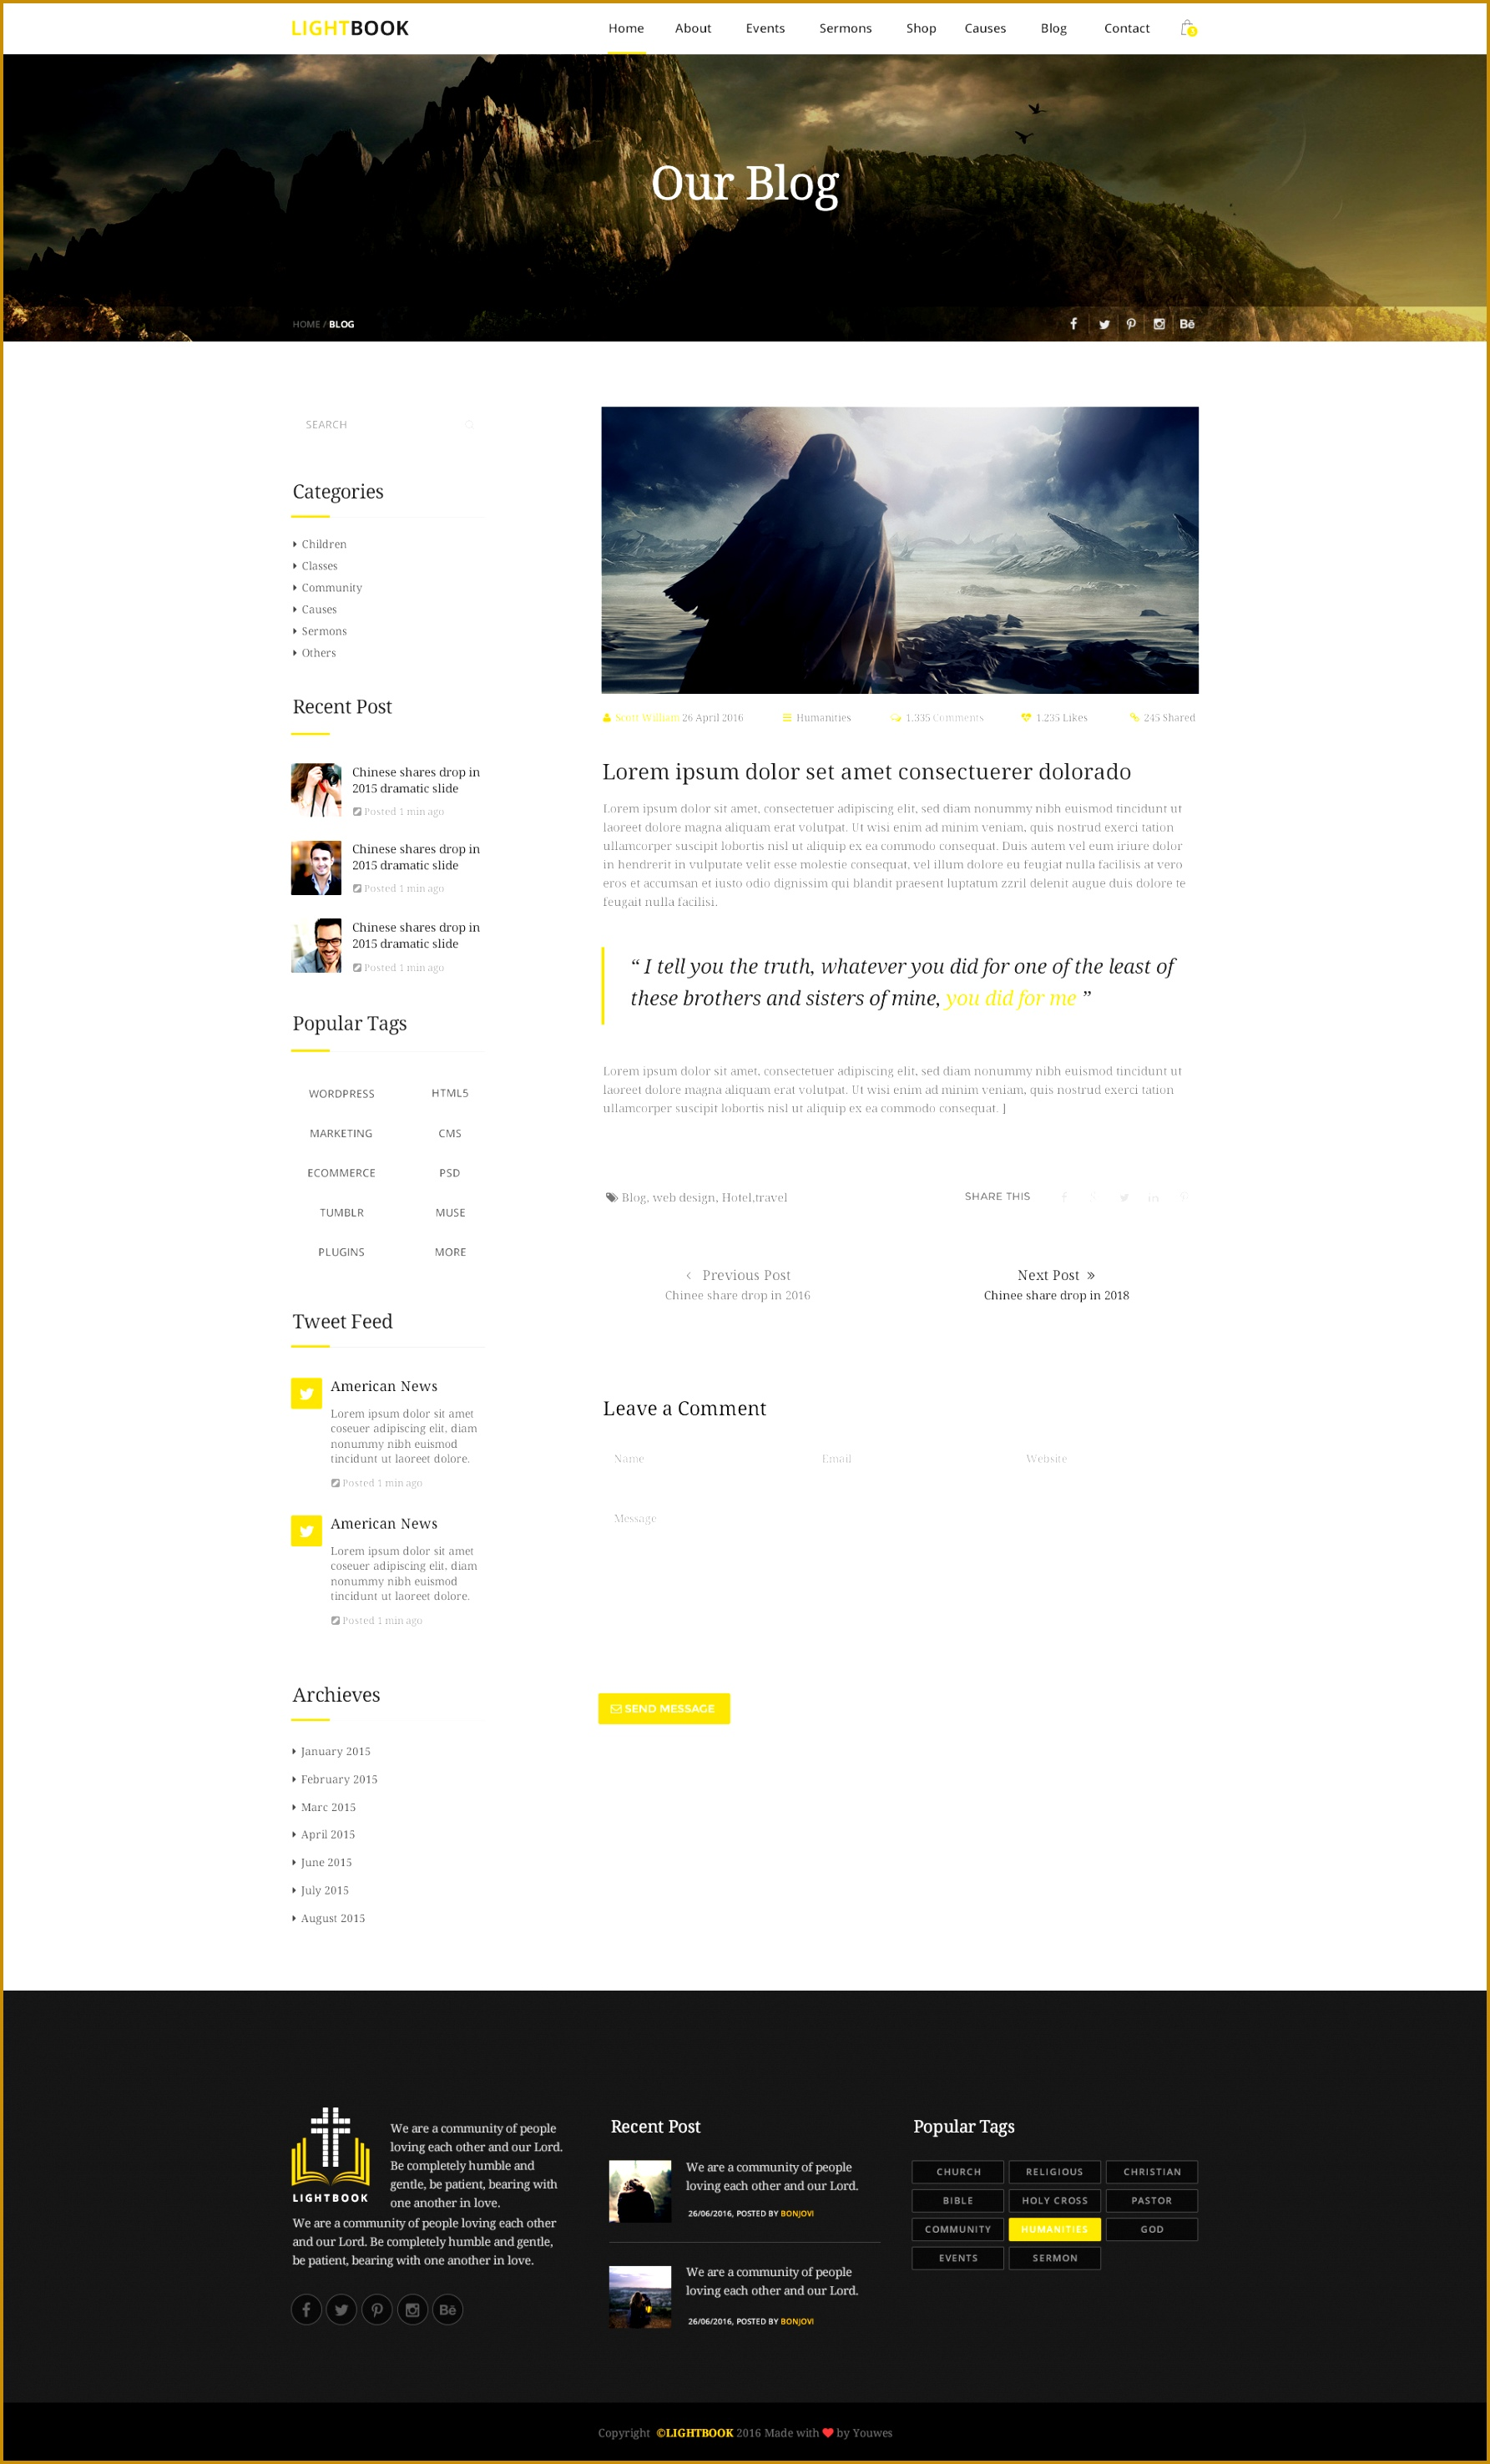 LightBook Church PSD Template By Youwes ThemeForest 7 5 Church Directory Templates Excel 5 Church Directory Templates Excel 17852951